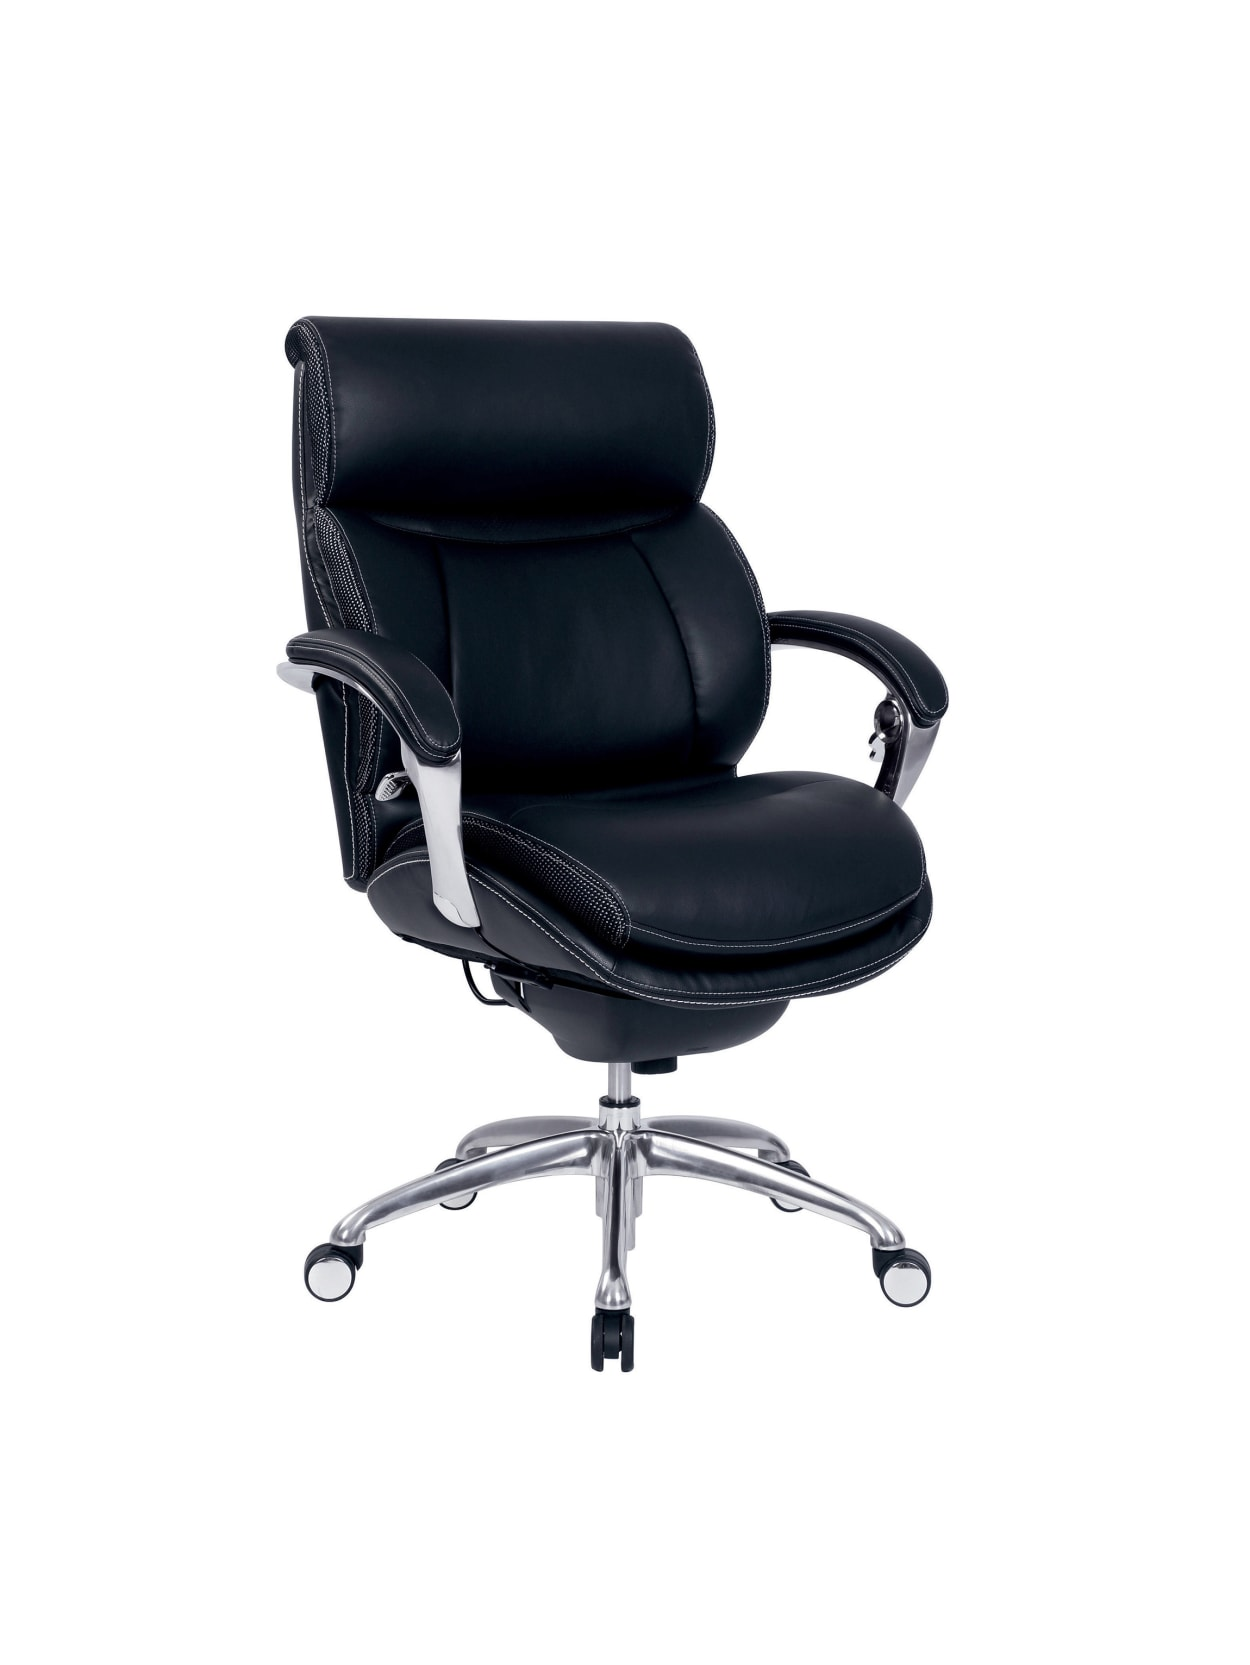 Serta iComfort i30 Mid Back Chair Onyx - Office Depot